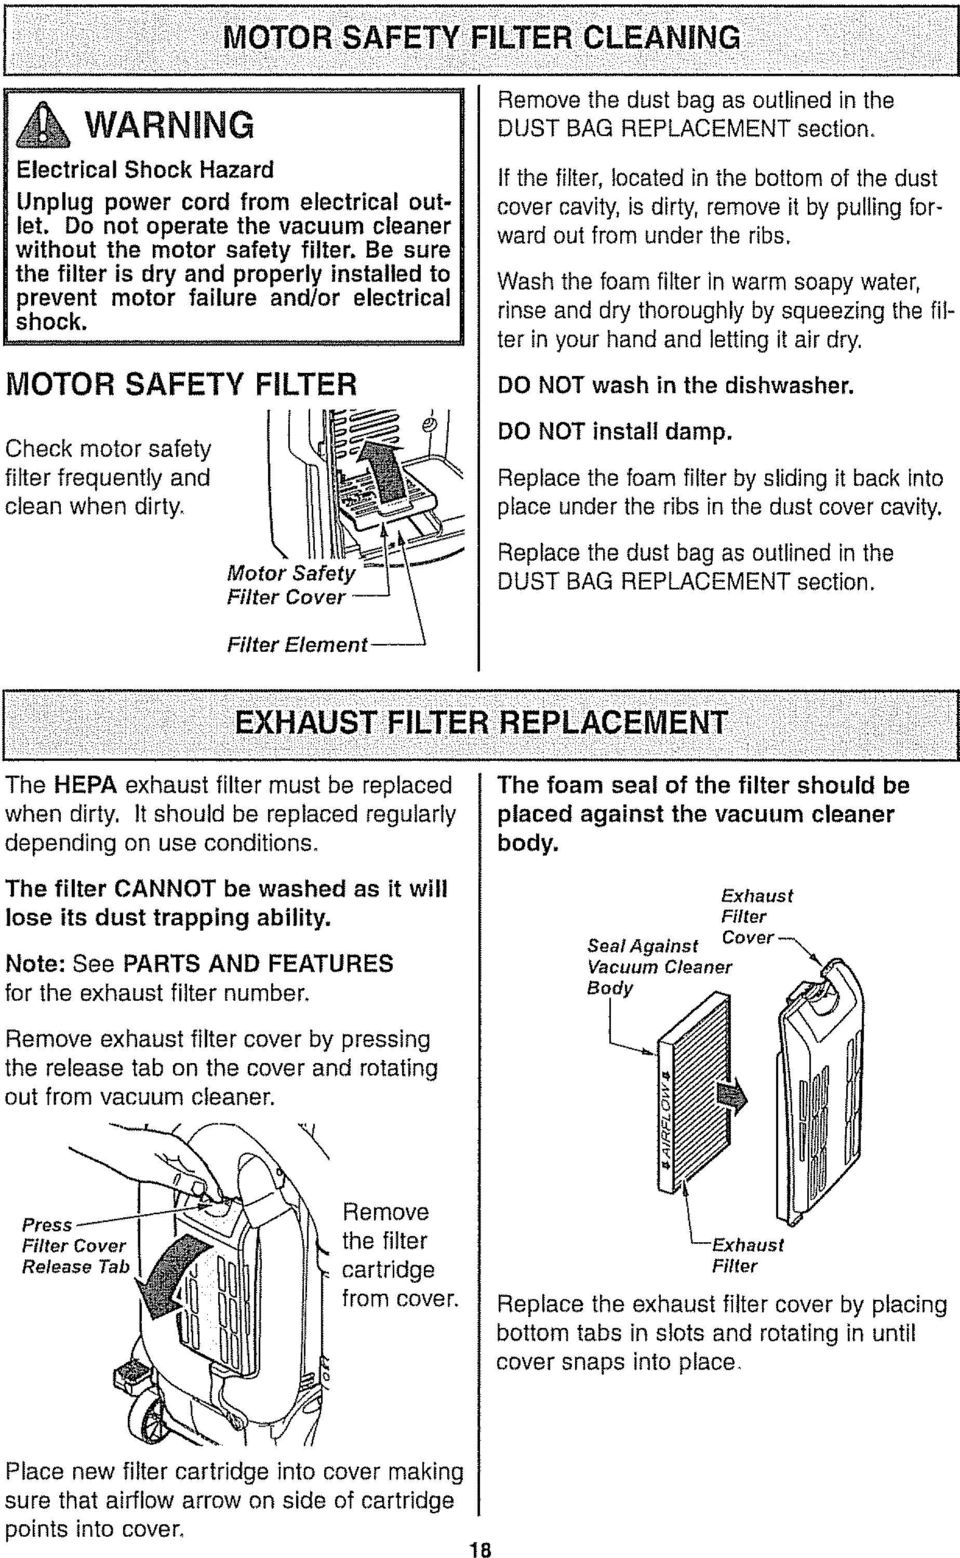 MOTOR SAFETY FILTER Check motor safety filter frequently and clean when dirty, Remove the dust bag as outlined in the DUST BAG REPLACEMENT section, If the filter, located in the bottom of the dust